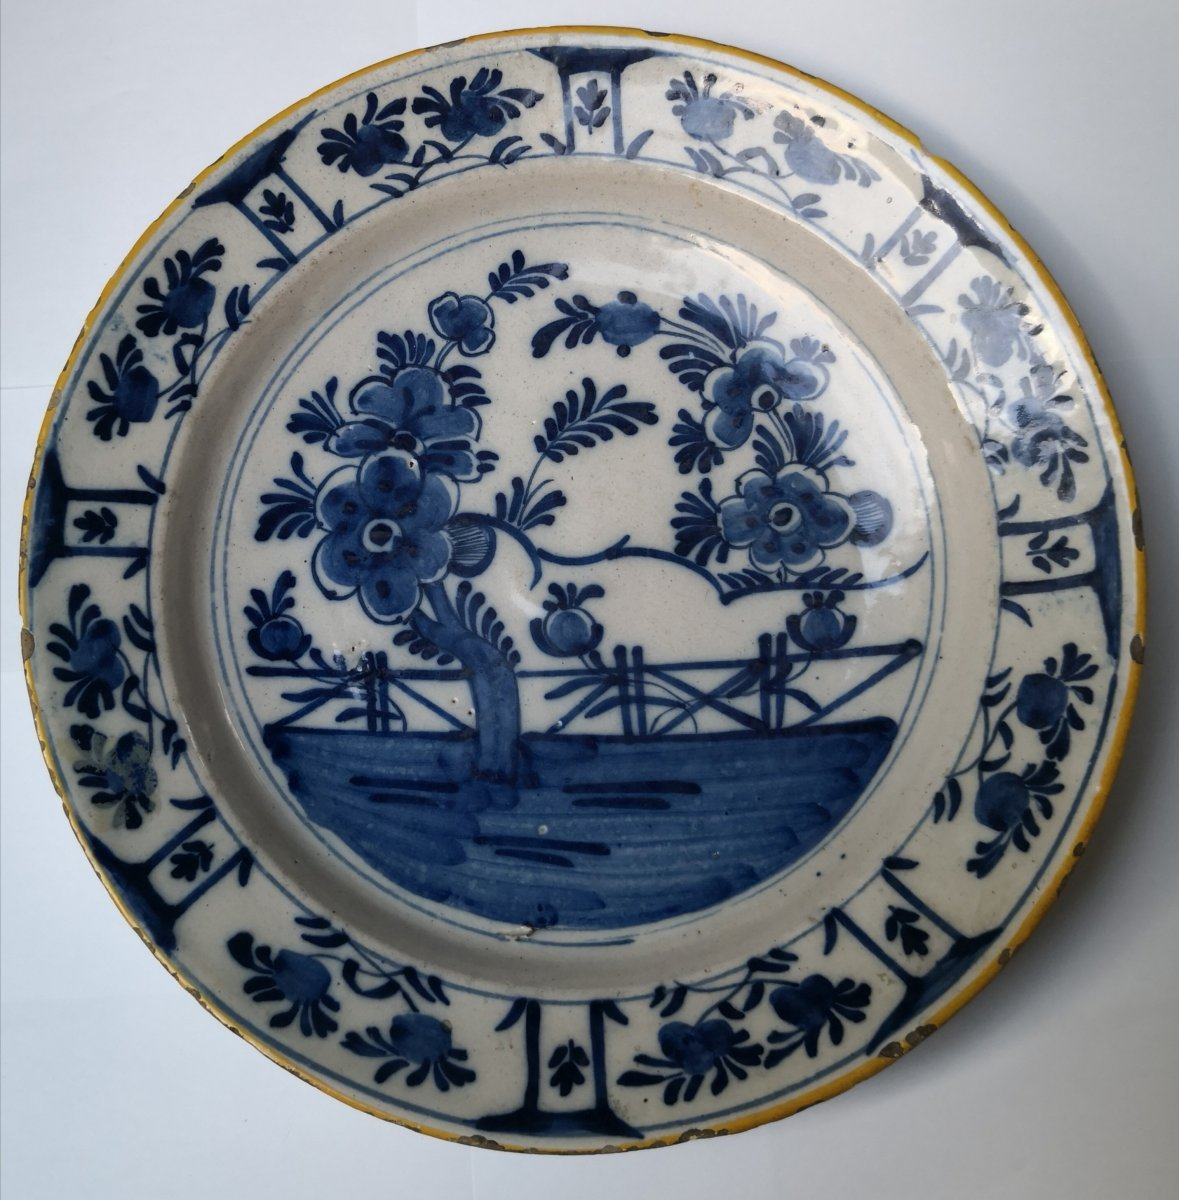 Round Dish In Delft Faience With White And Blue Decor. Eighteenth Century